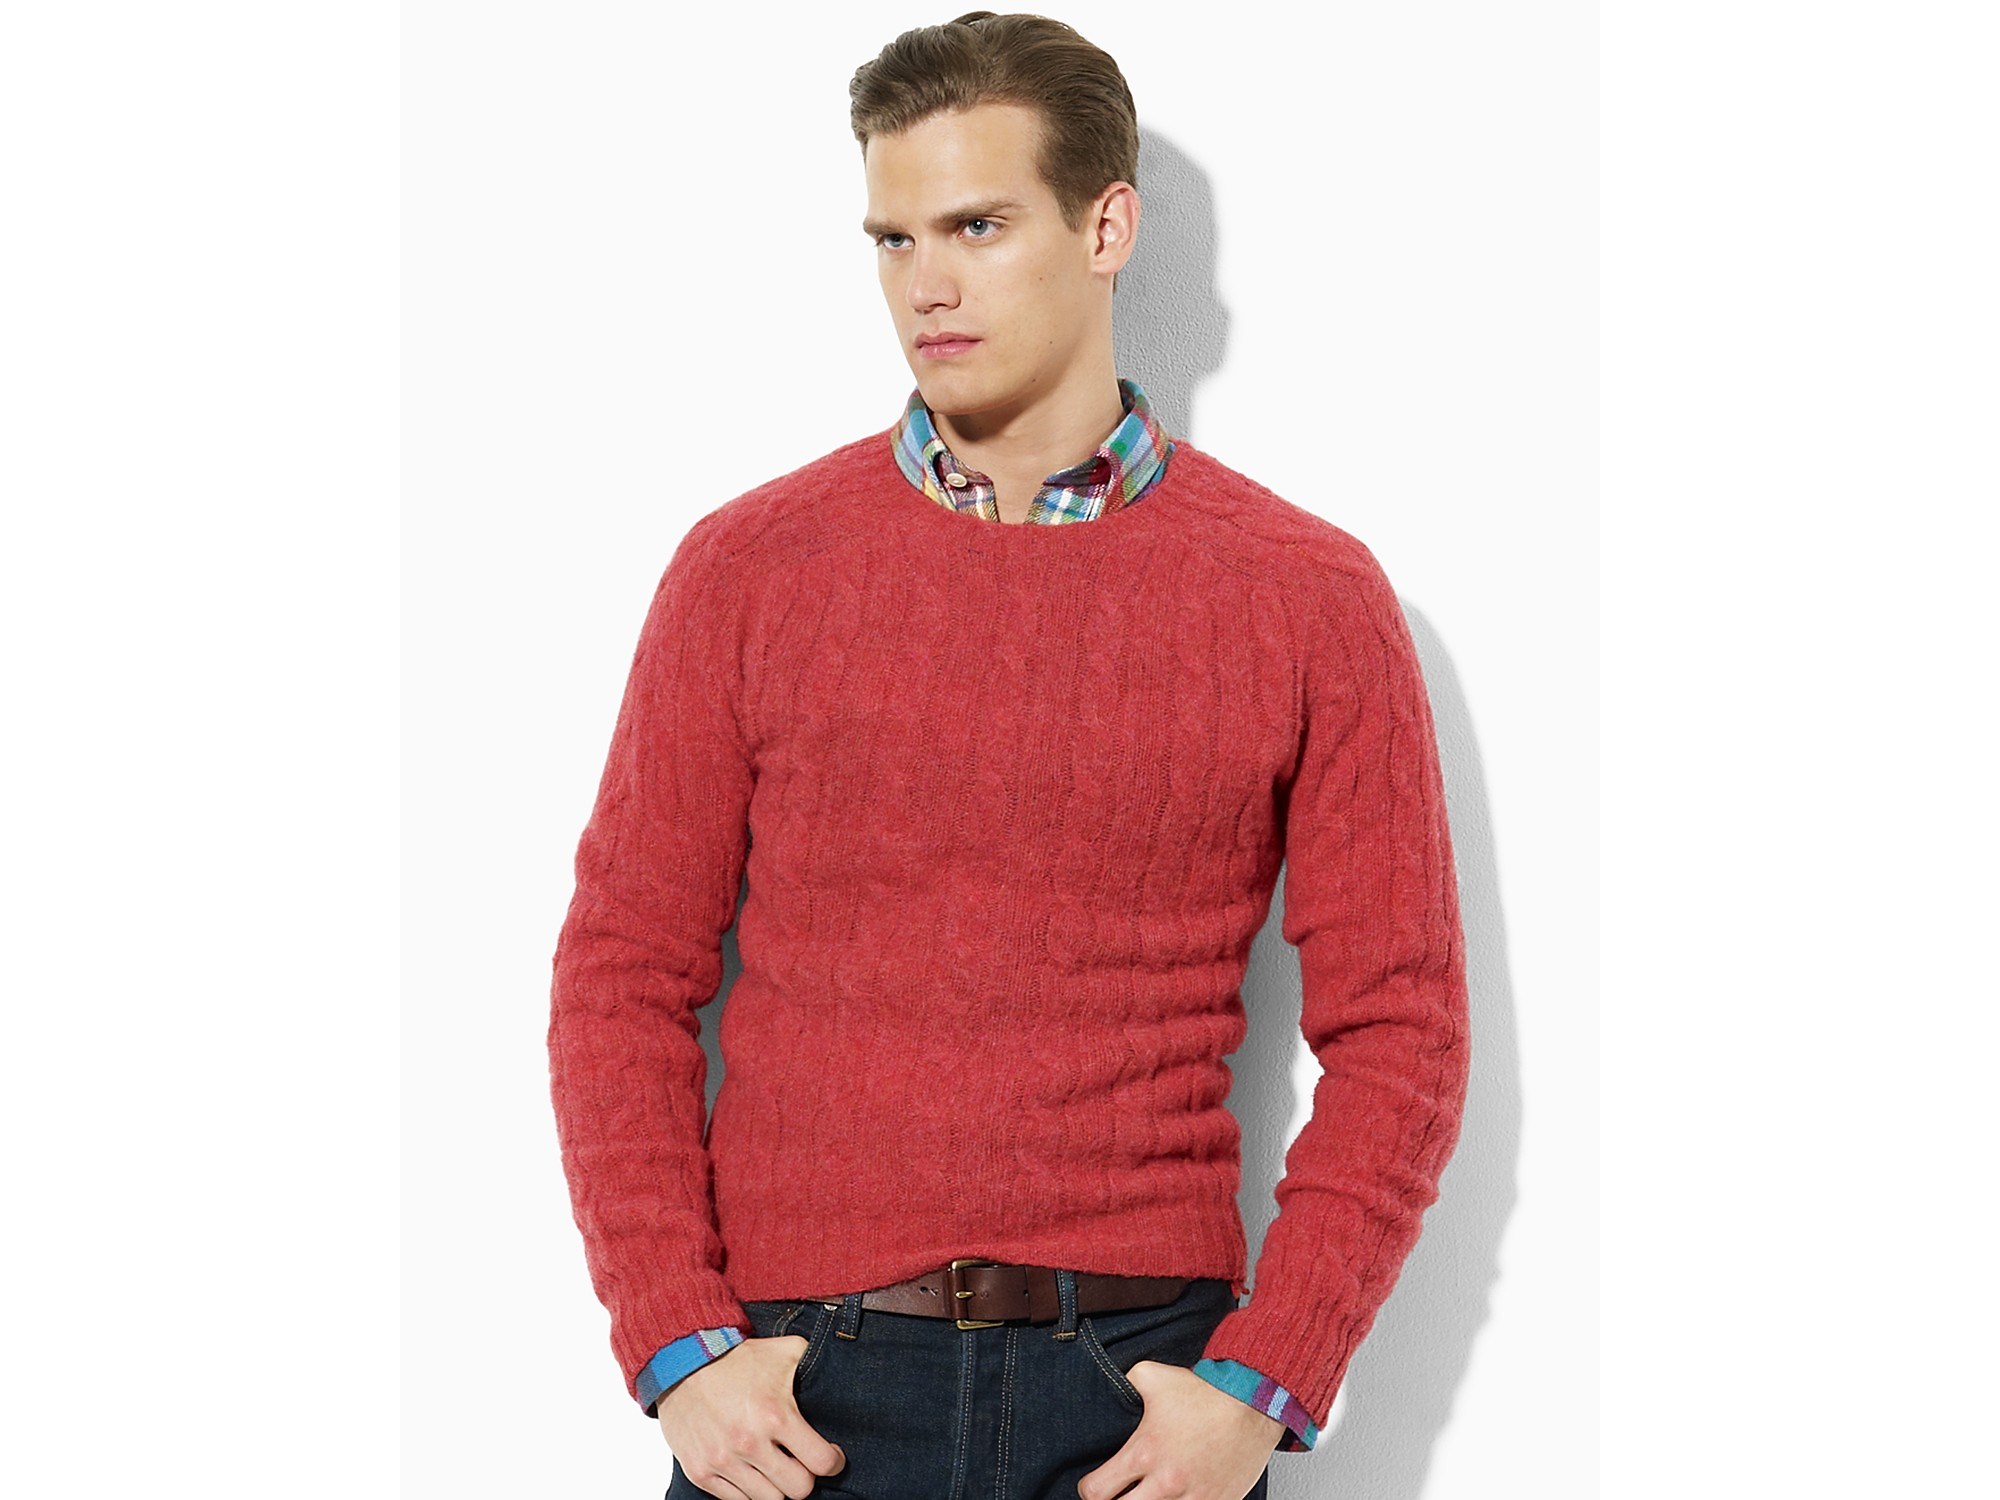 a7ea46b51a879 Lyst - Ash Polo Ralph Lauren Wool-cashmere Cable-knit Sweater in ...